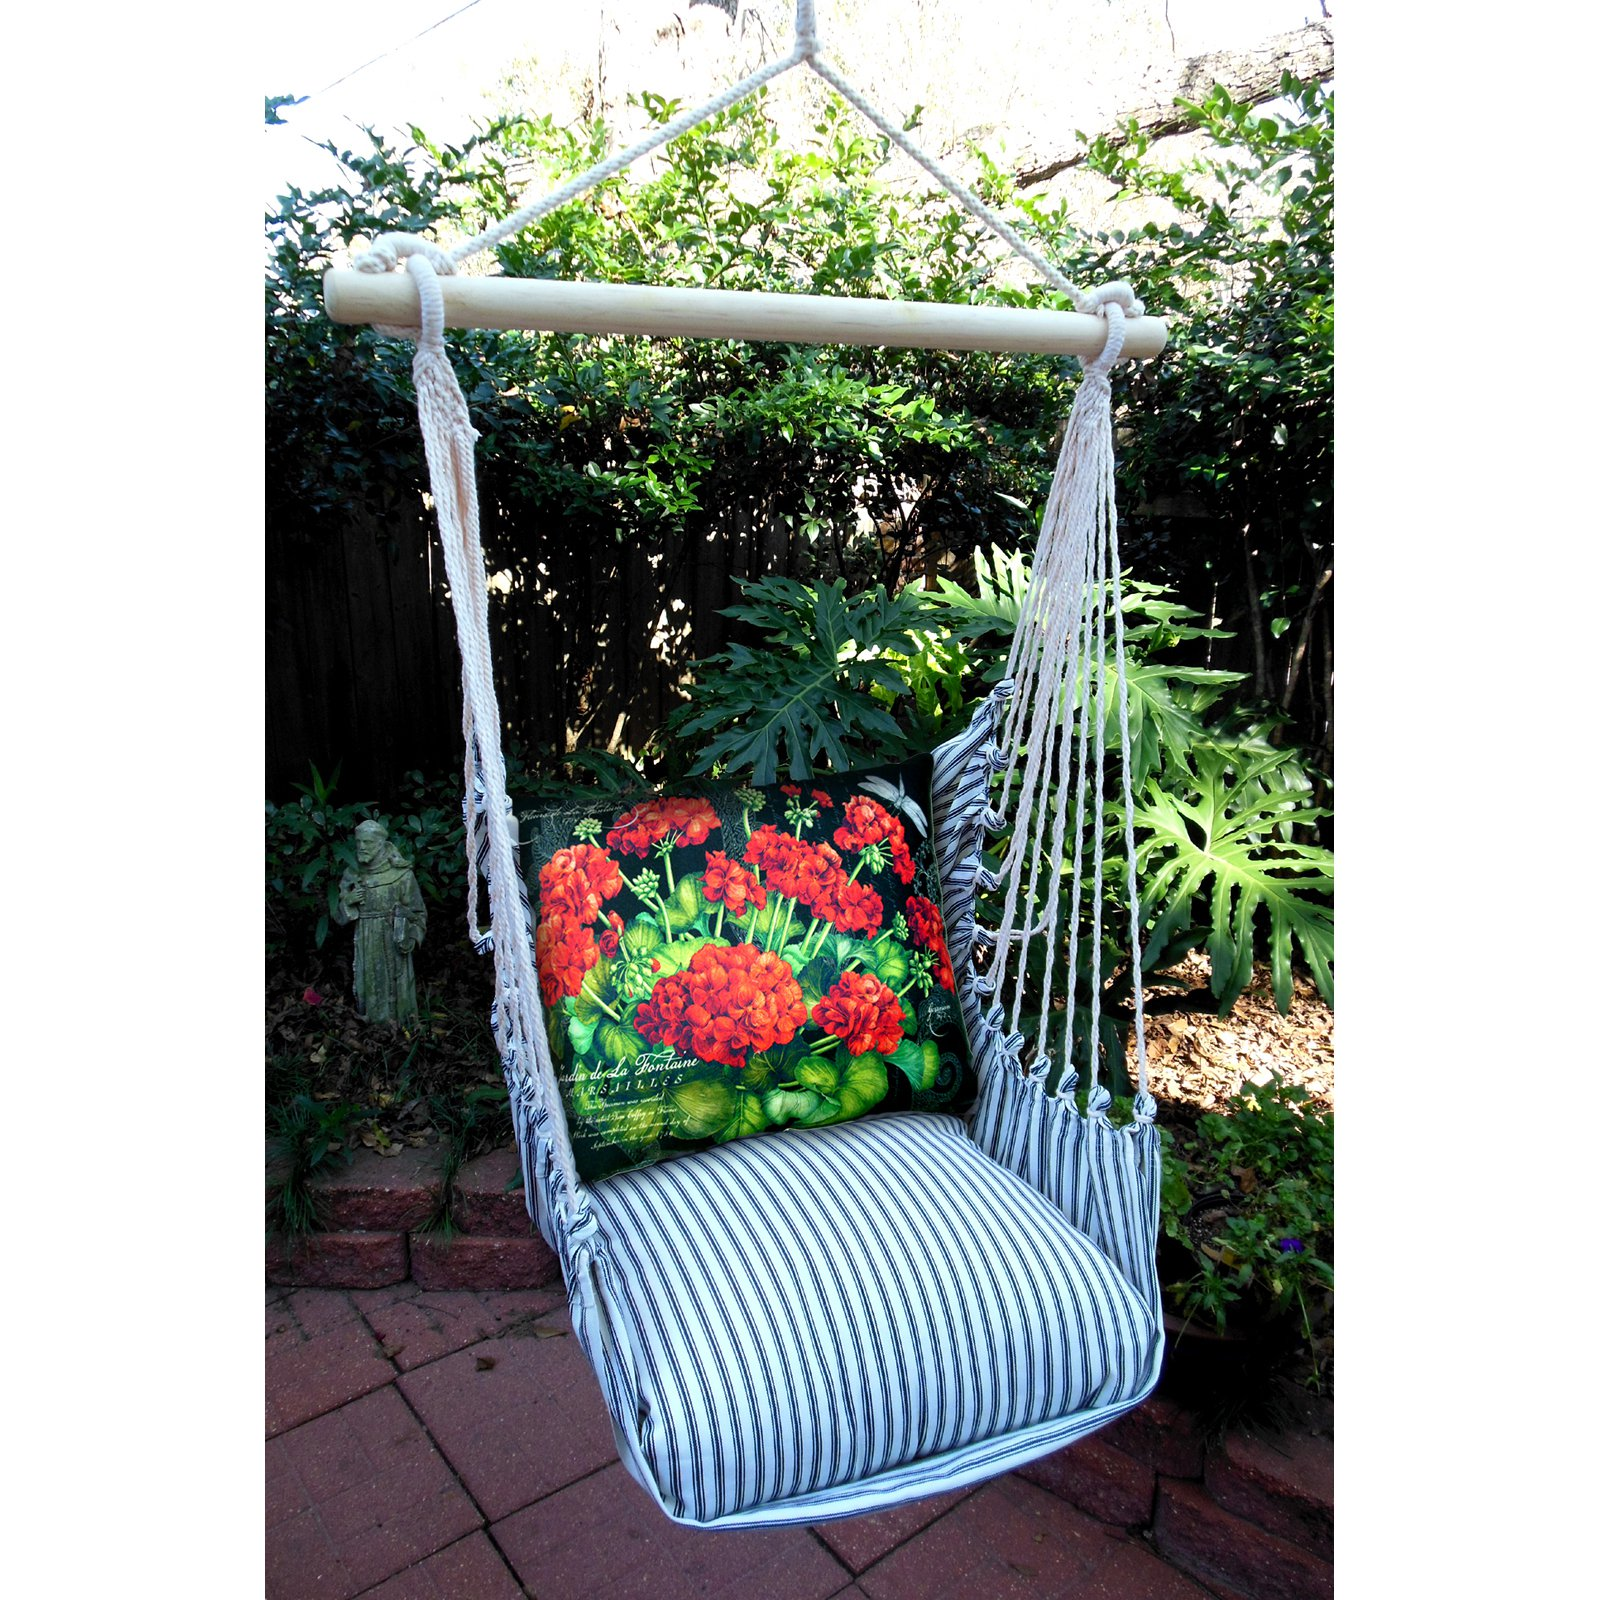 Magnolia Casual Daisy Patch Hammock Chair & Pillow Set